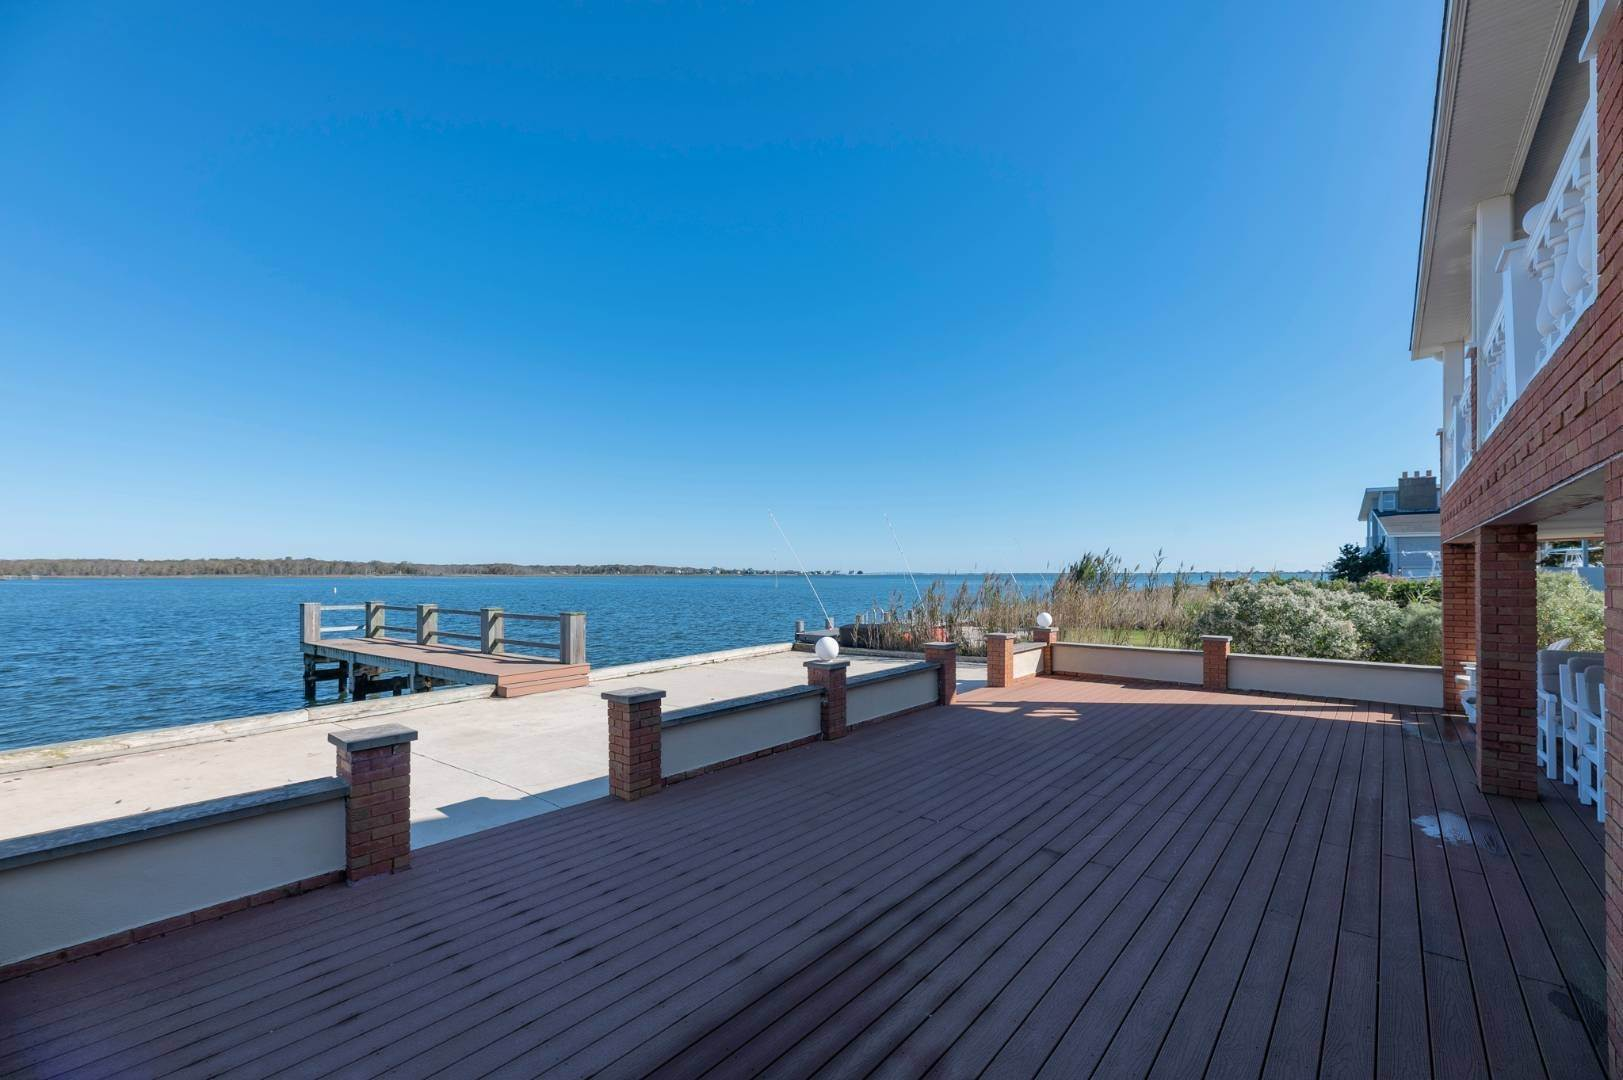 Single Family Home for Sale at Expansive Water Views In East Quogue 69b Little Pine Lane, East Quogue, NY 11942